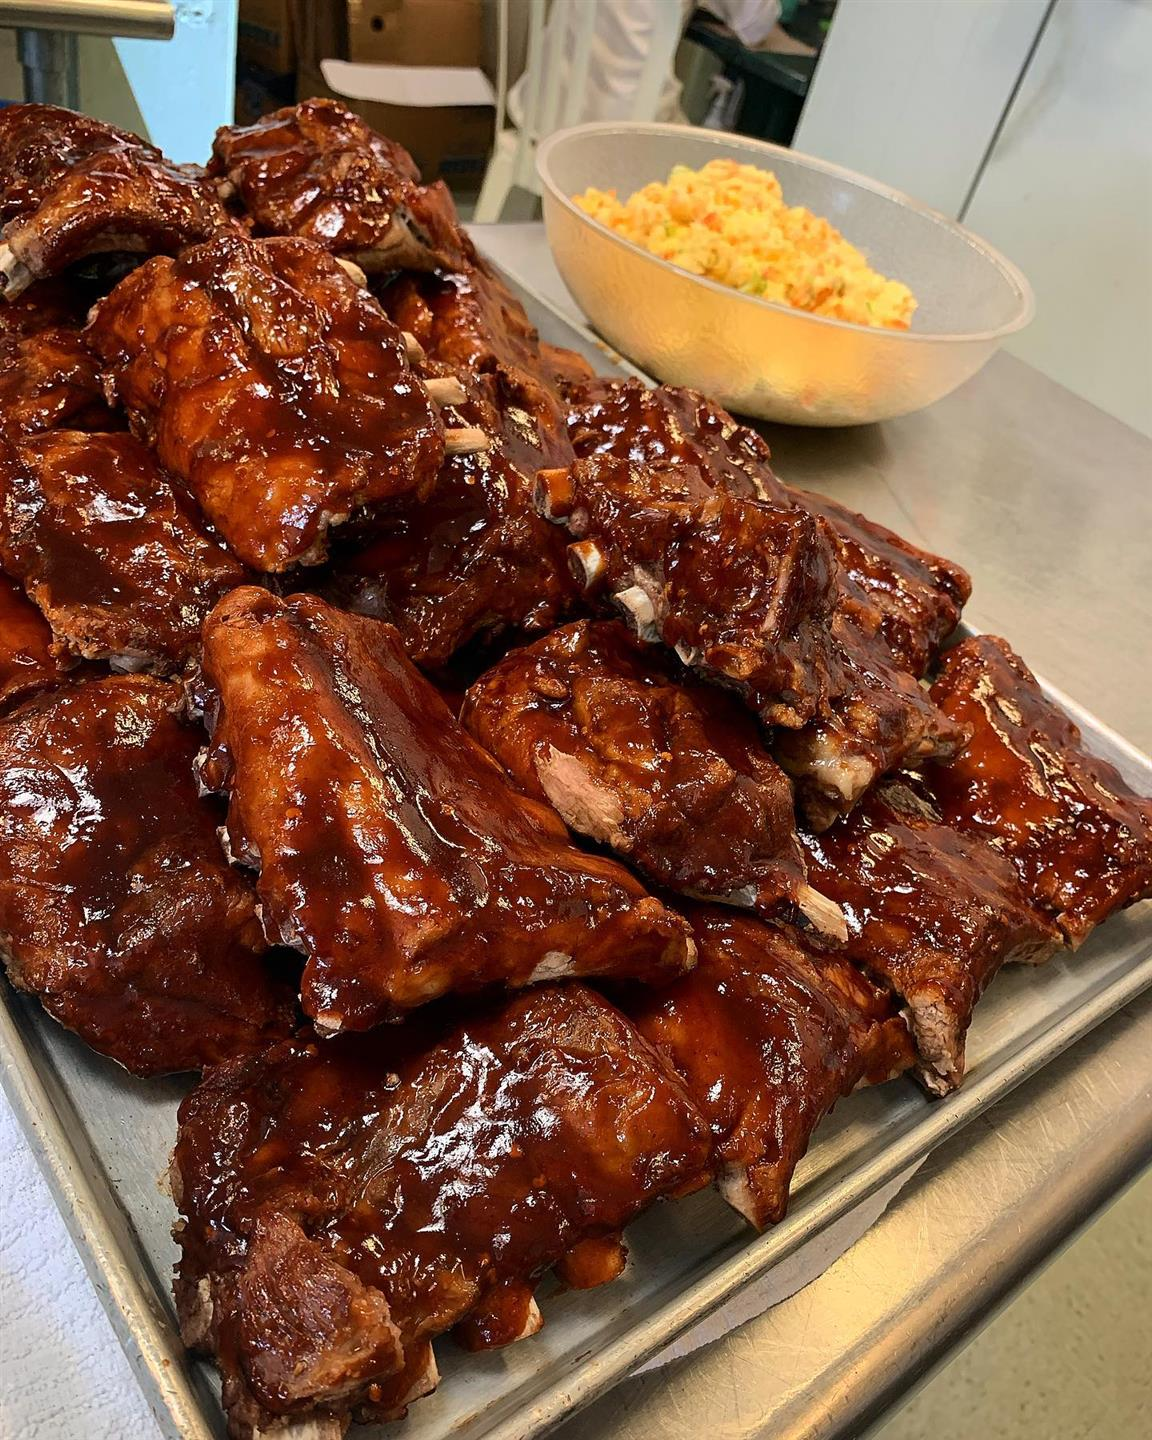 tray of barbecue ribs